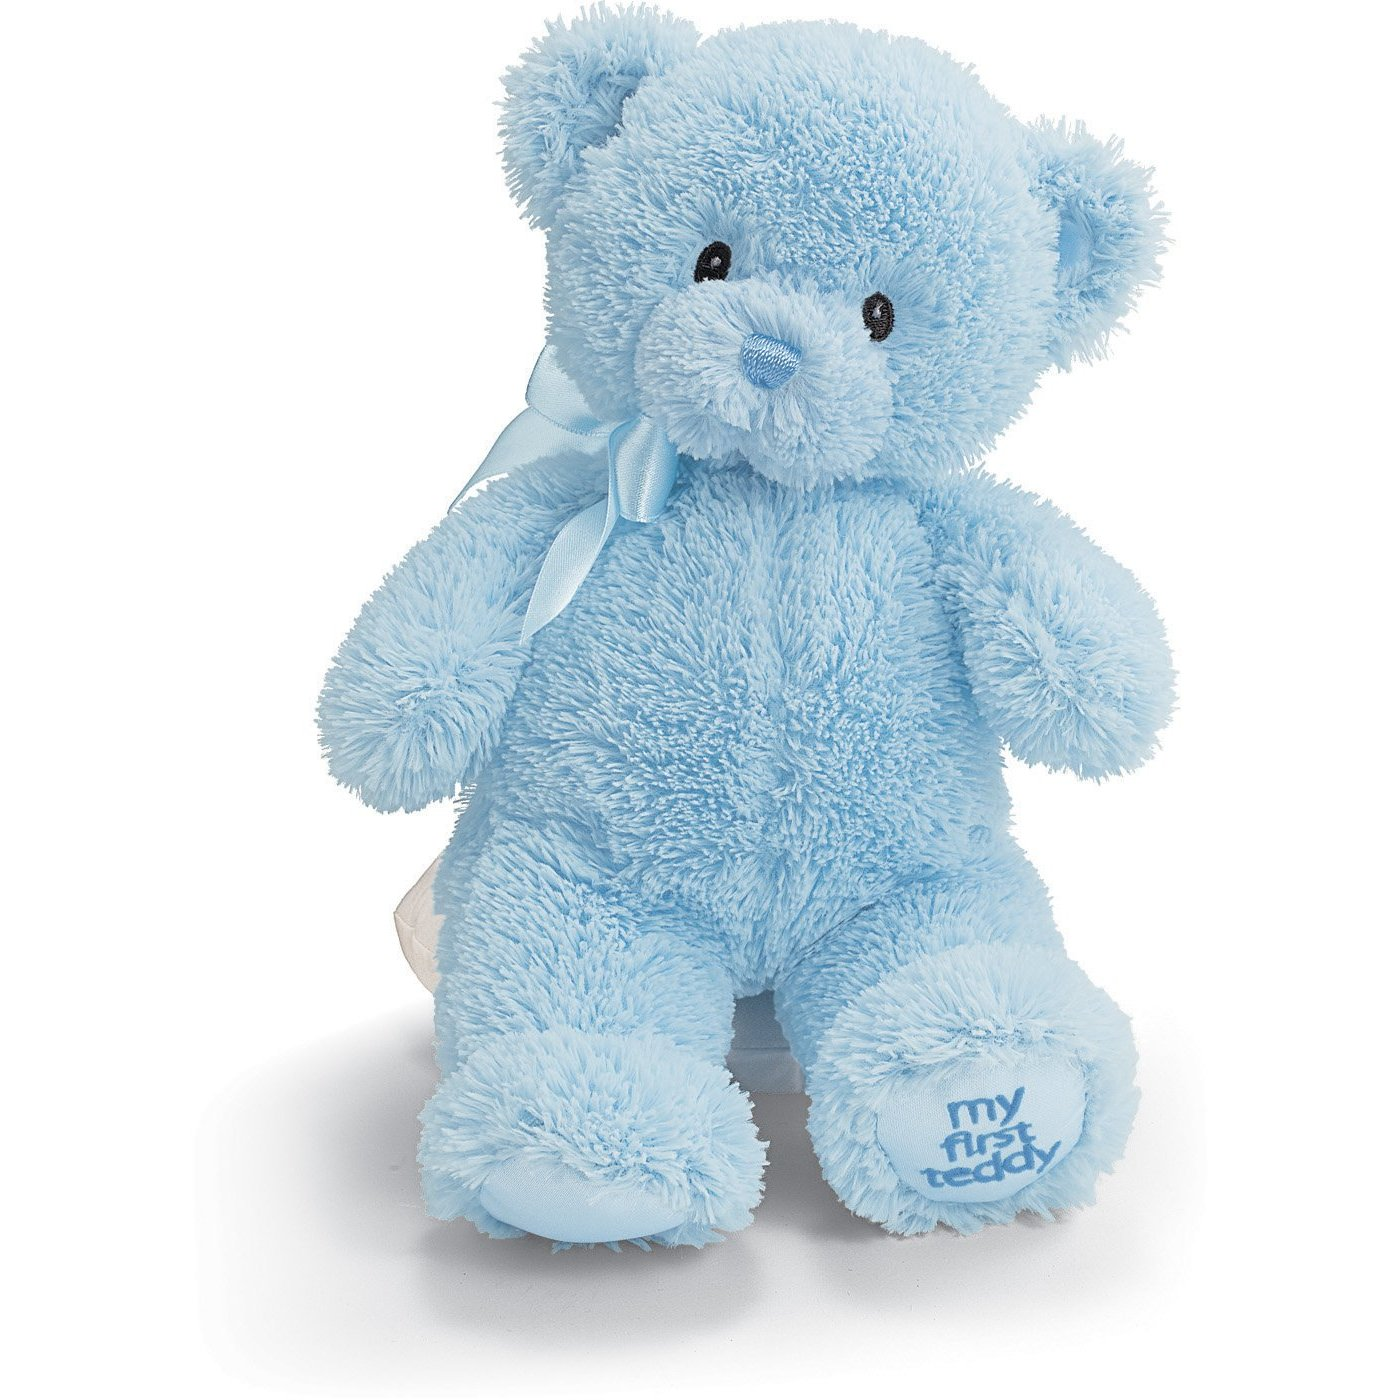 Teddy Bear (blue) - Stuffed Animals Photo (32604310) - Fanpop